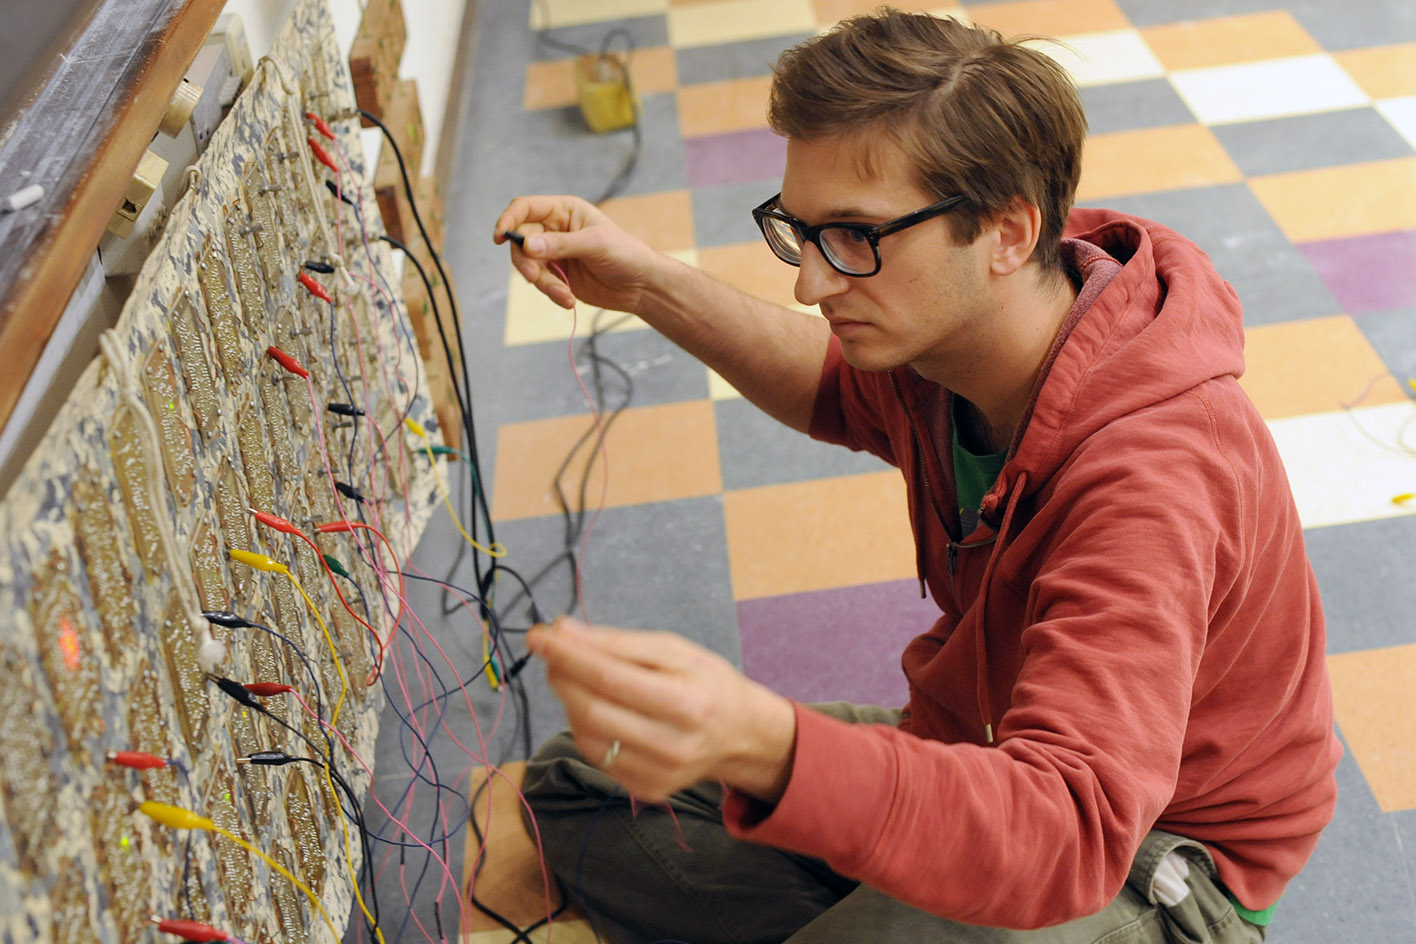 Graduate student Peter Blasser tunes one of his hand-crafted analog instruments. (Photos by Olivia Drake)